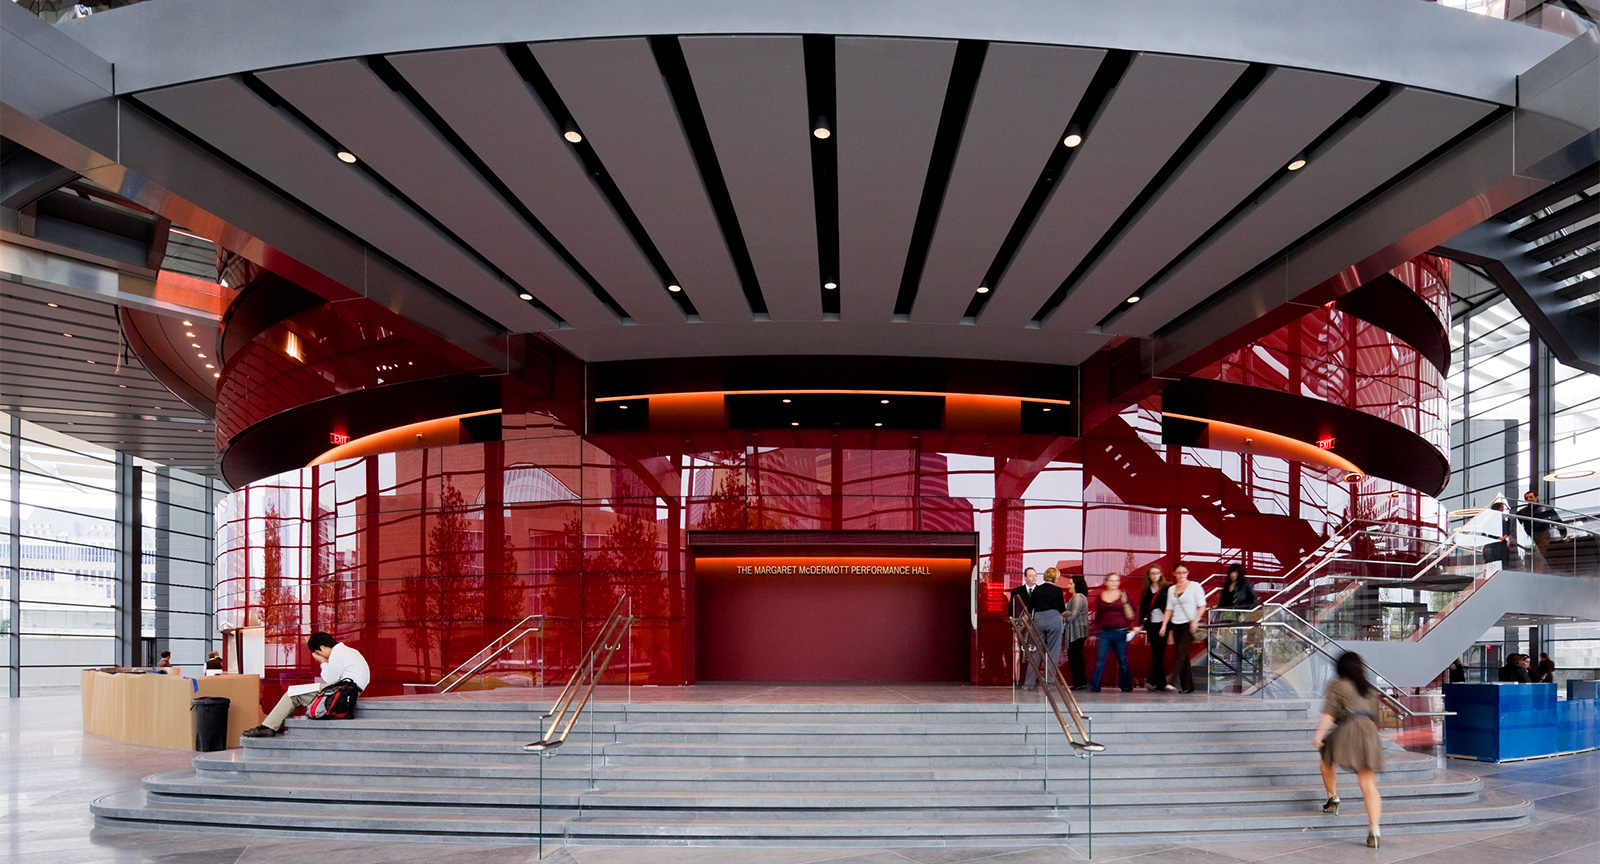 Dallas Arts District Performing Arts Winspear Opera House